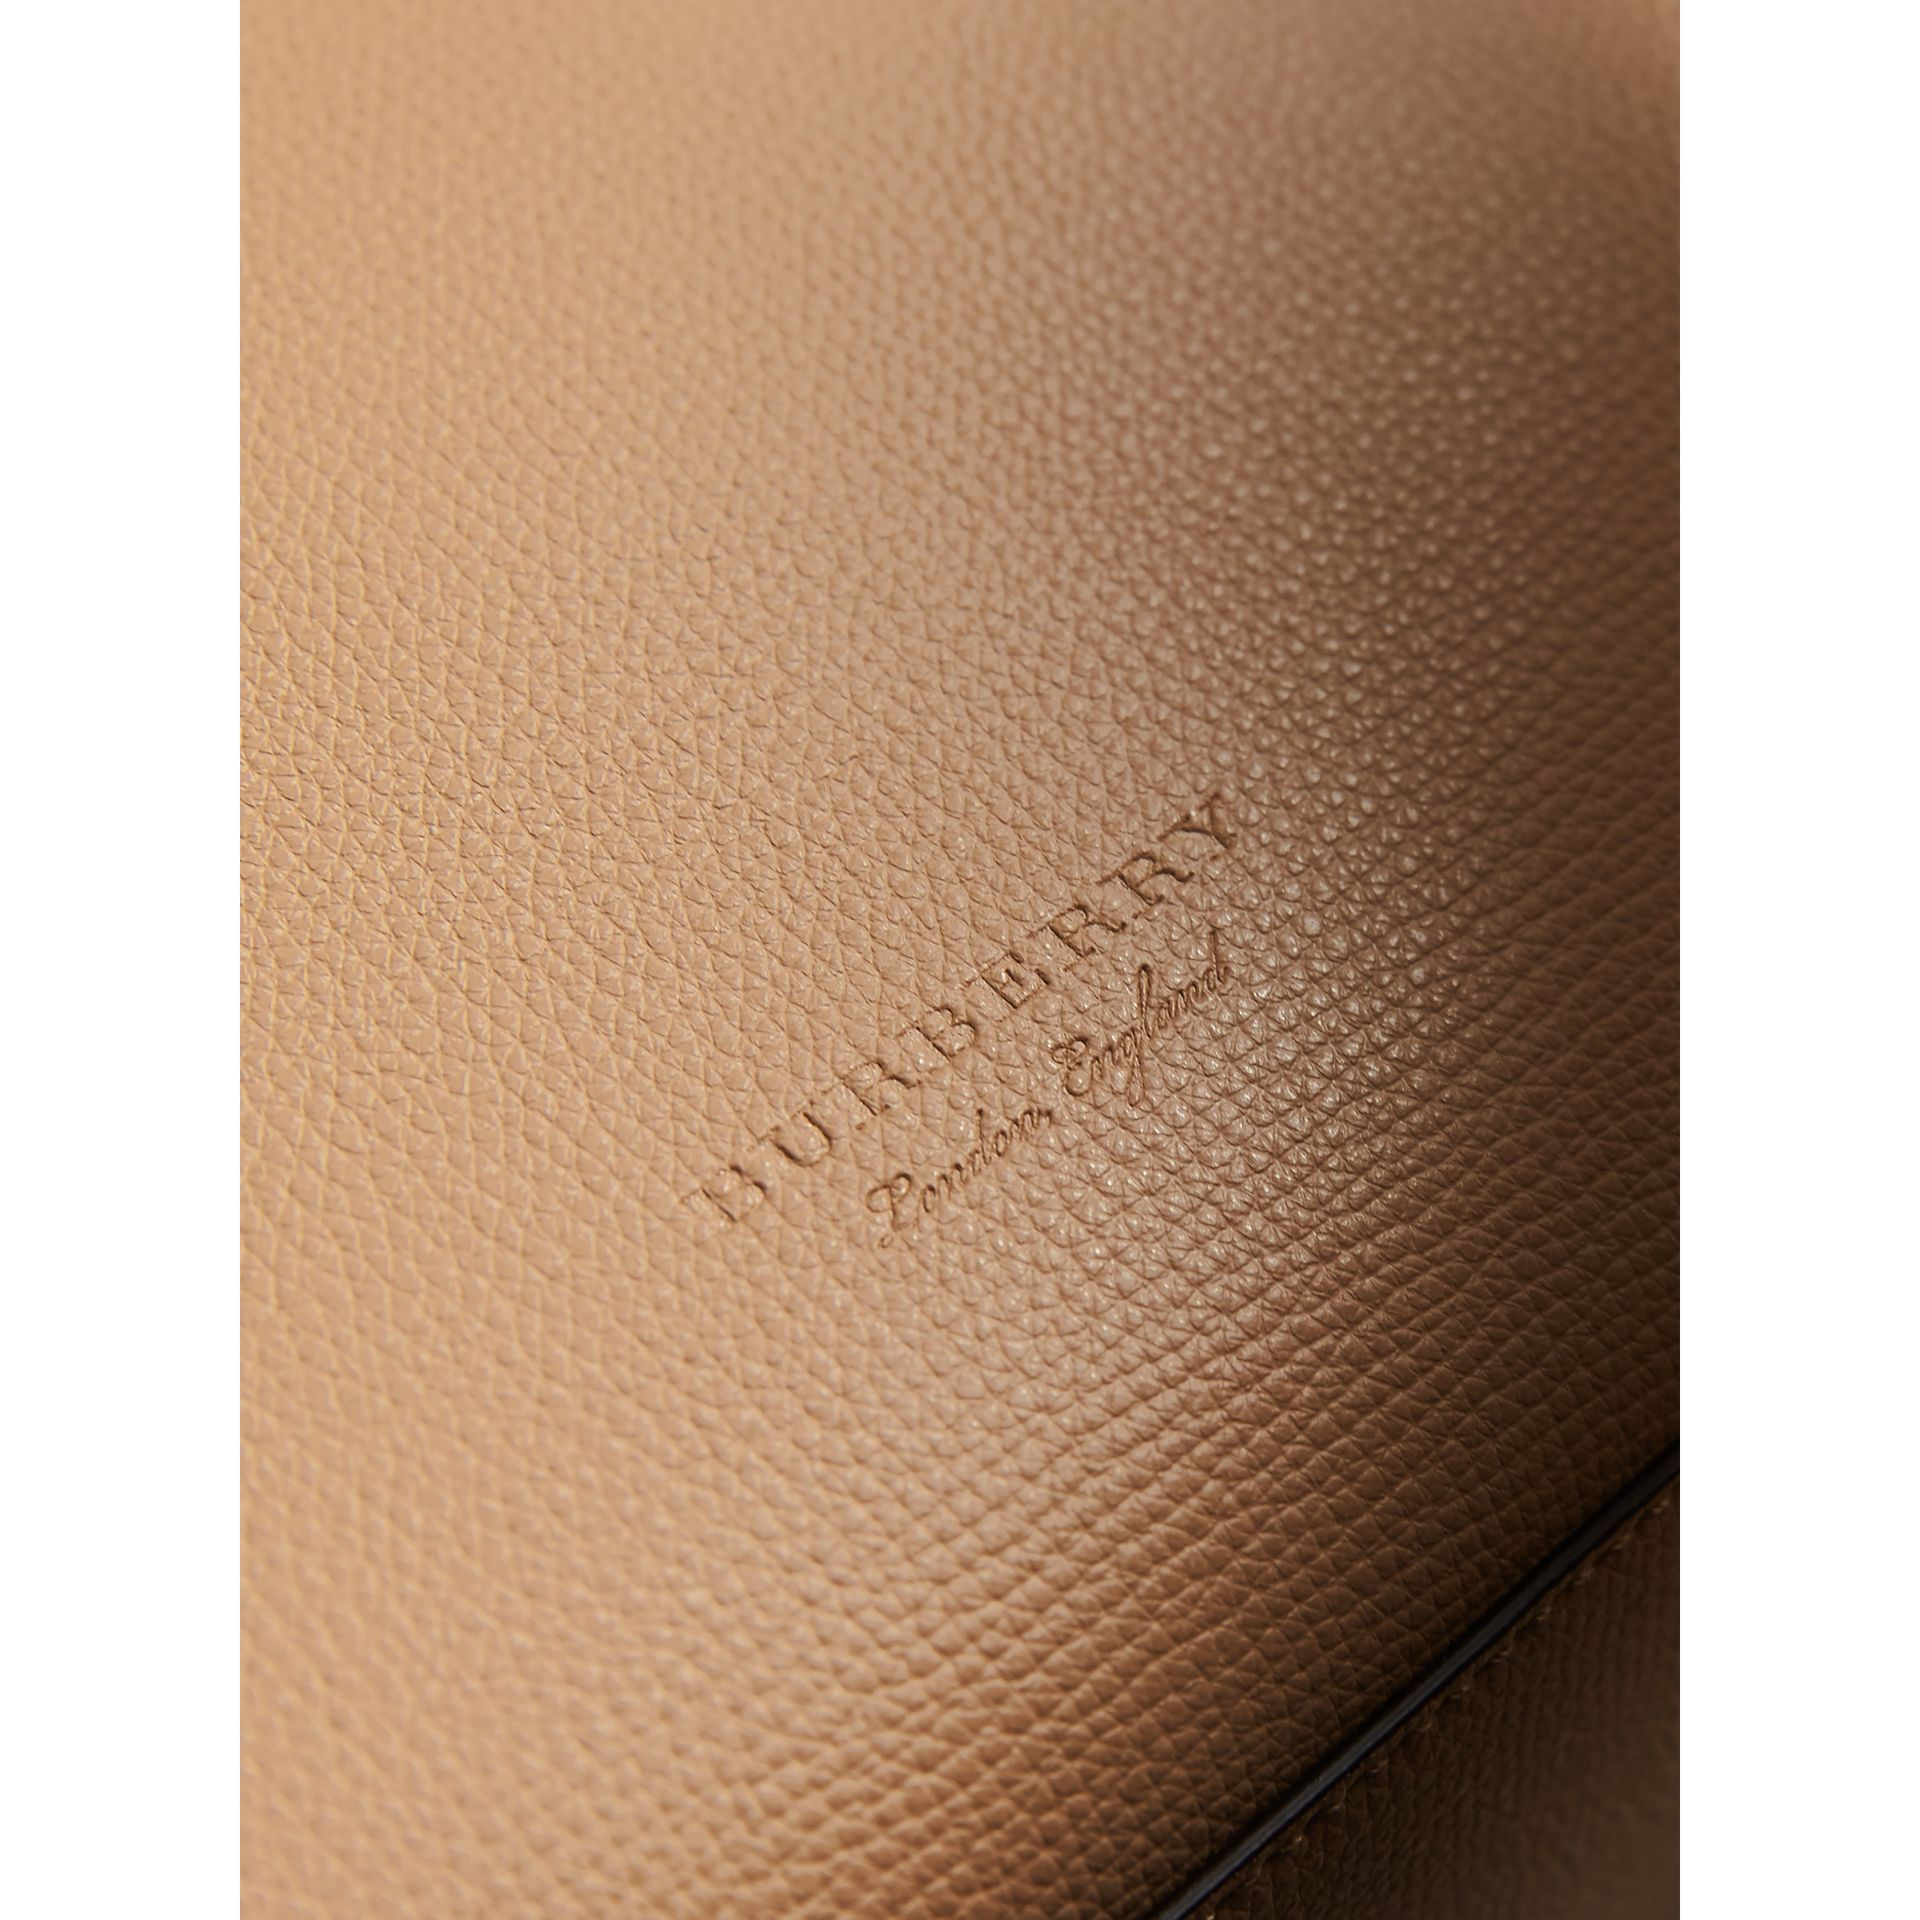 Medium Coated Leather Tote in Mid Camel - Women | Burberry Canada - gallery image 5